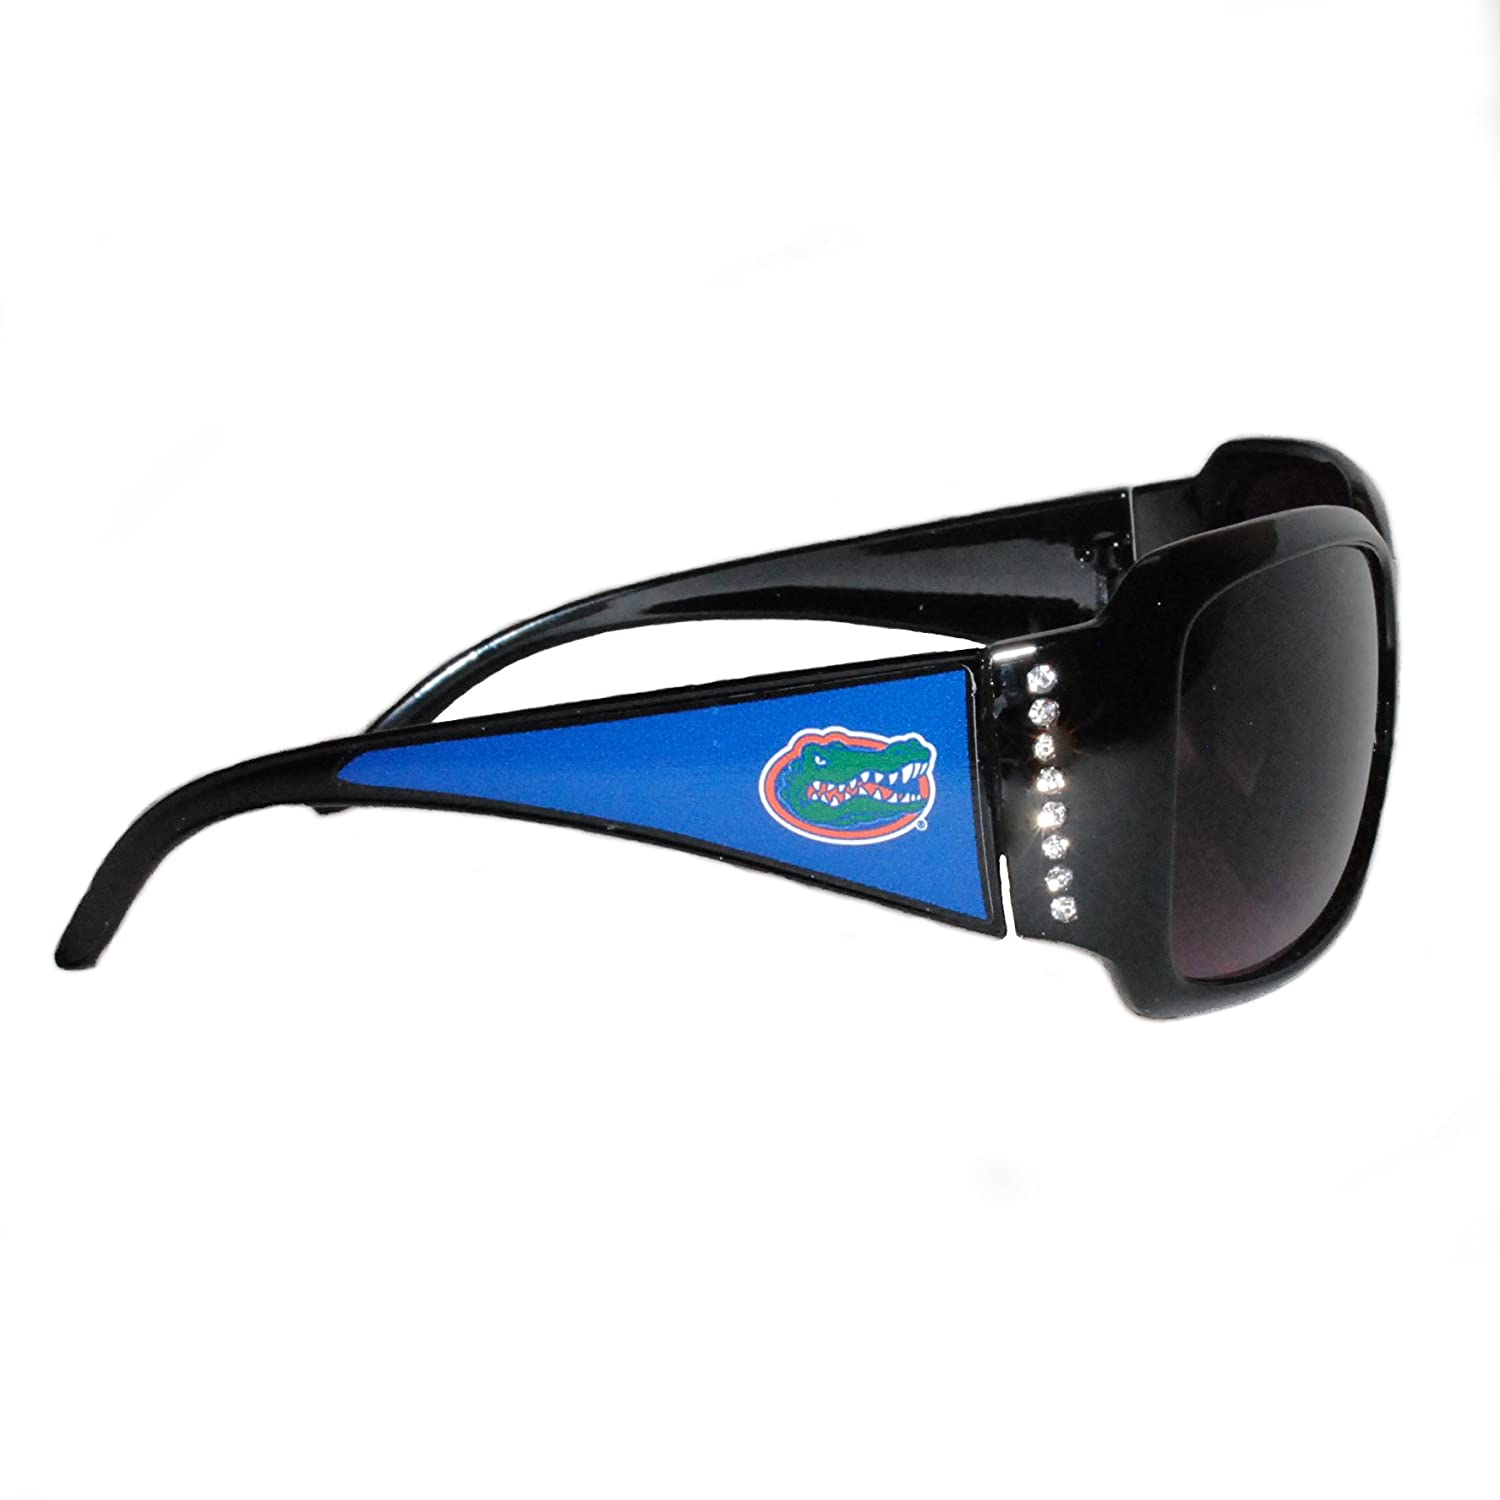 Sports Team Accessories Florida Gators Black Sunglasses with Logo and Crystal Clear Rhinestones for Ladies